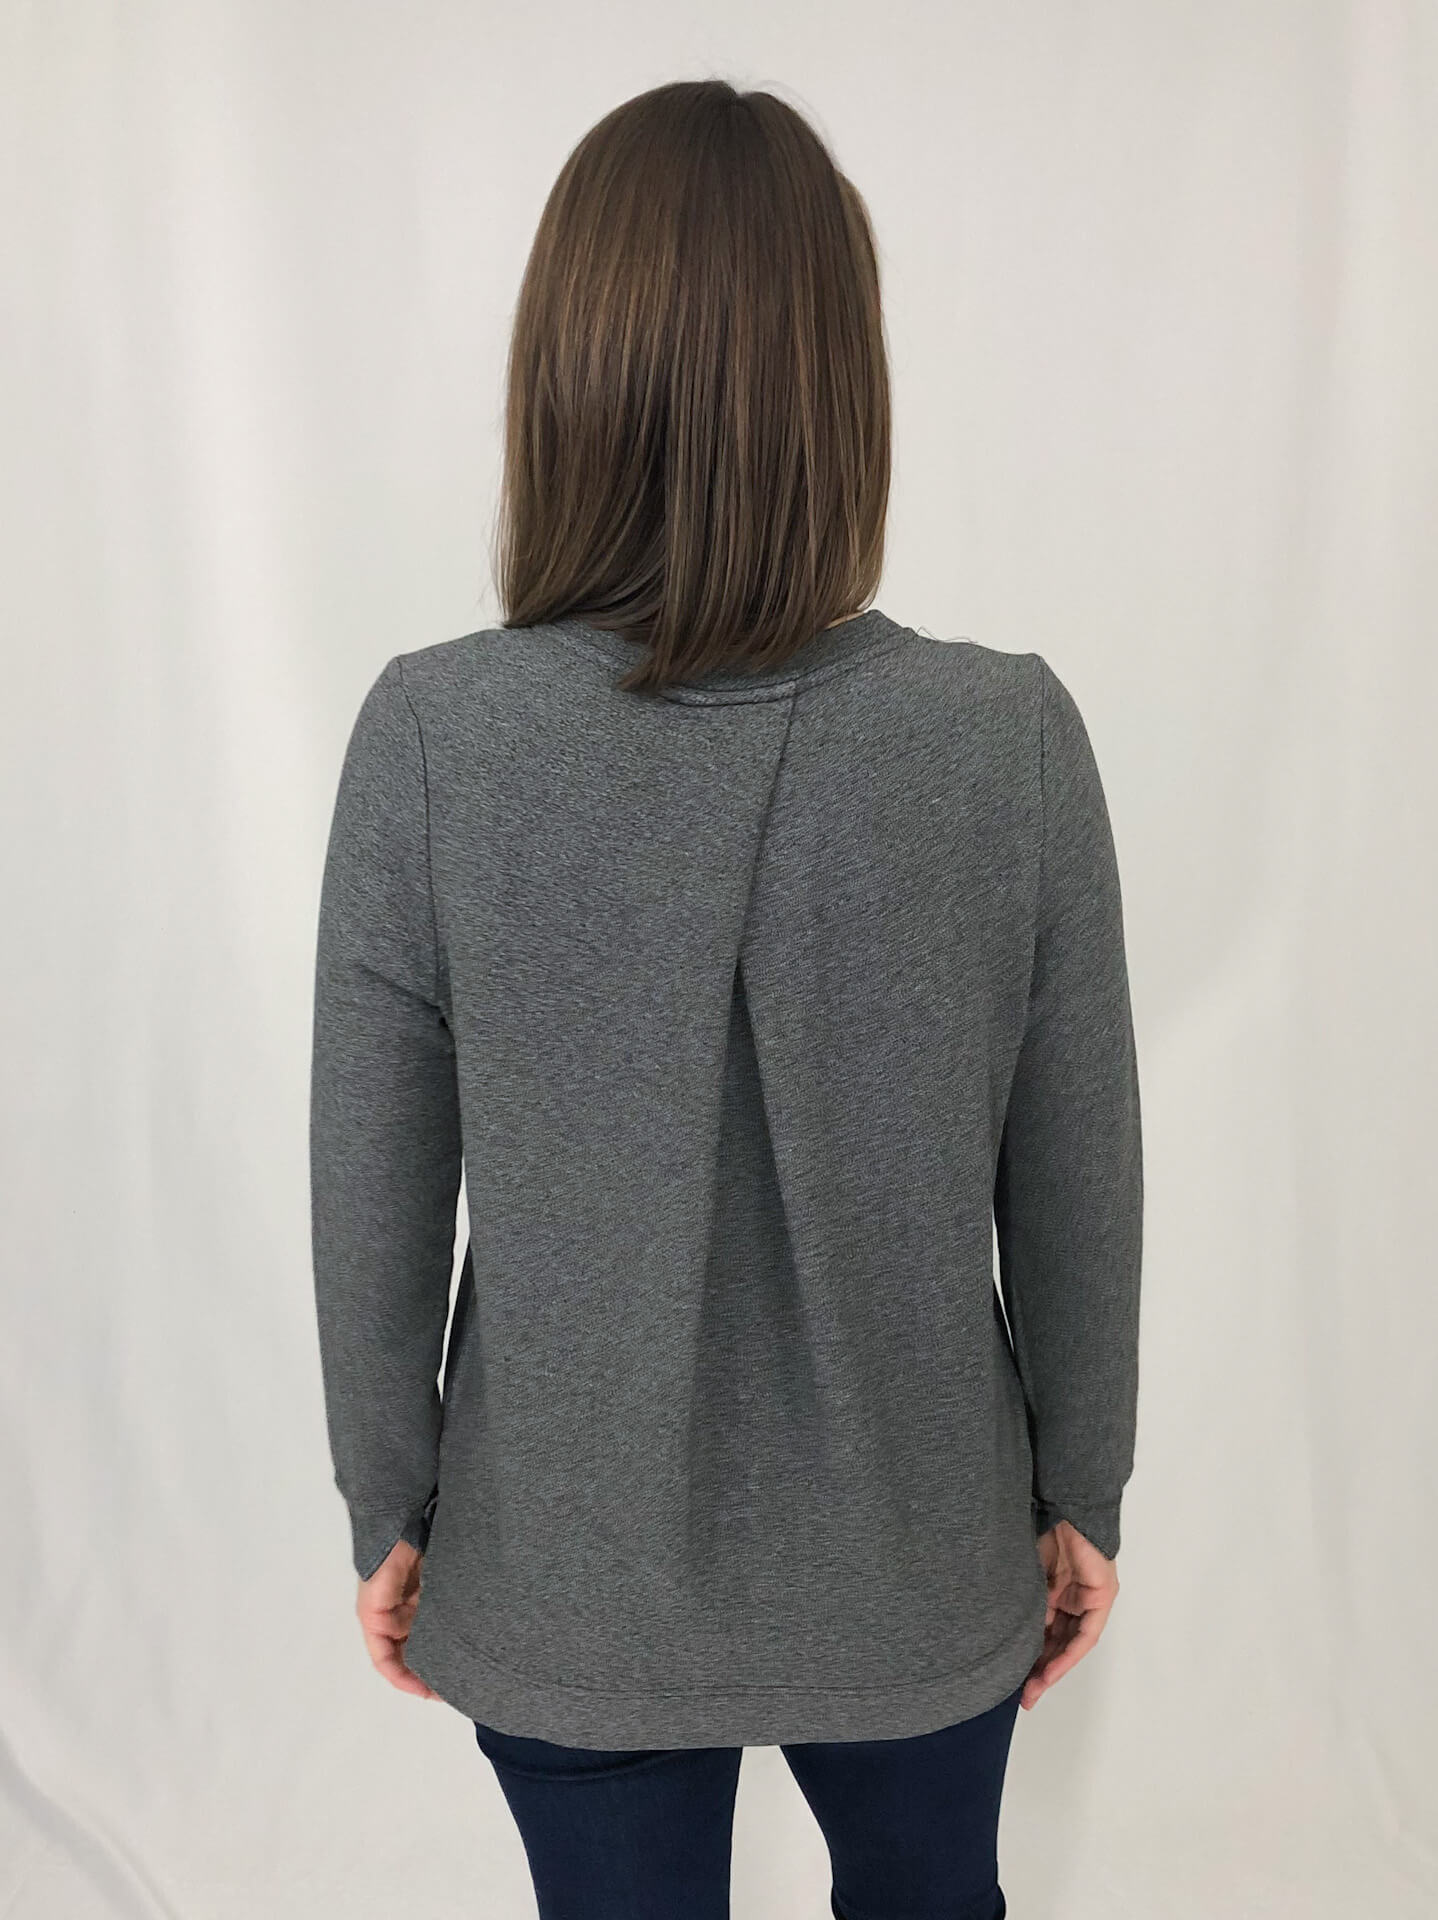 Bamboo Sweatshirt V Neck